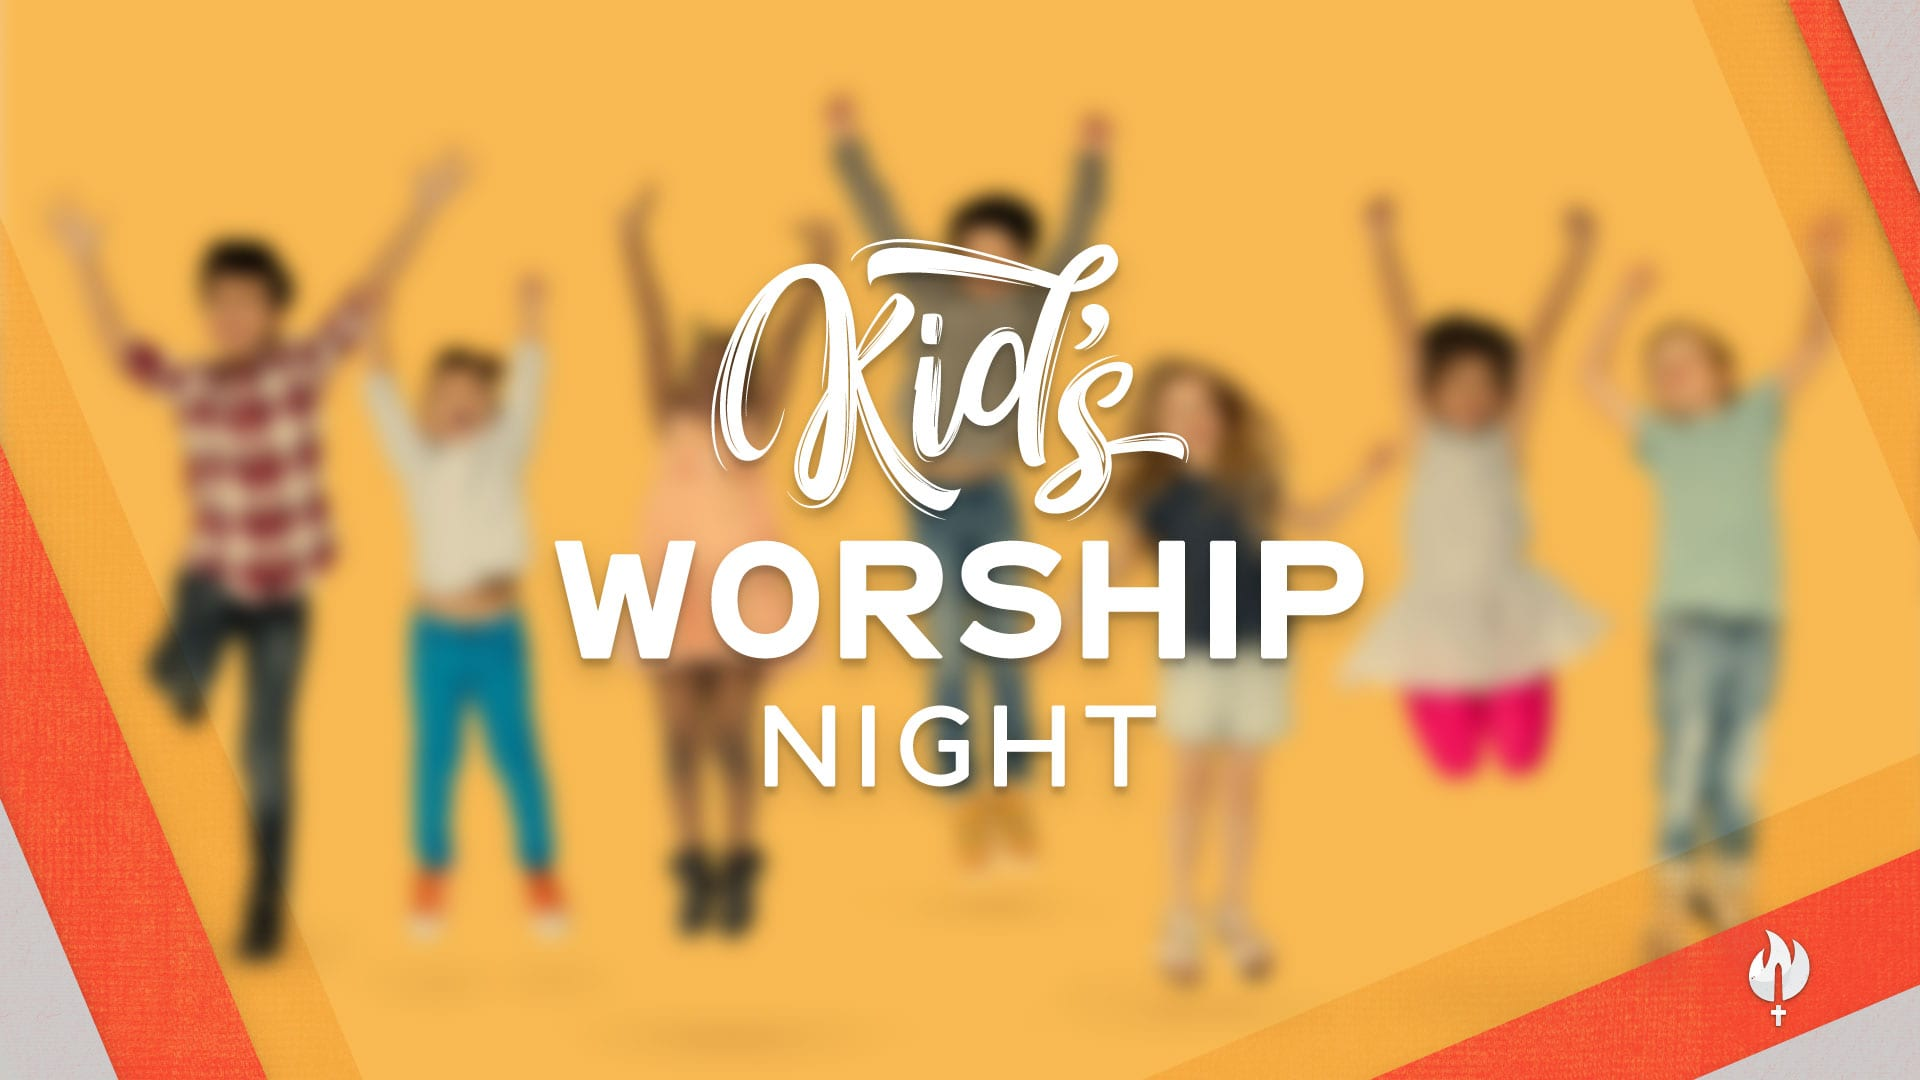 Kids Worship Night at MyGeneration Church